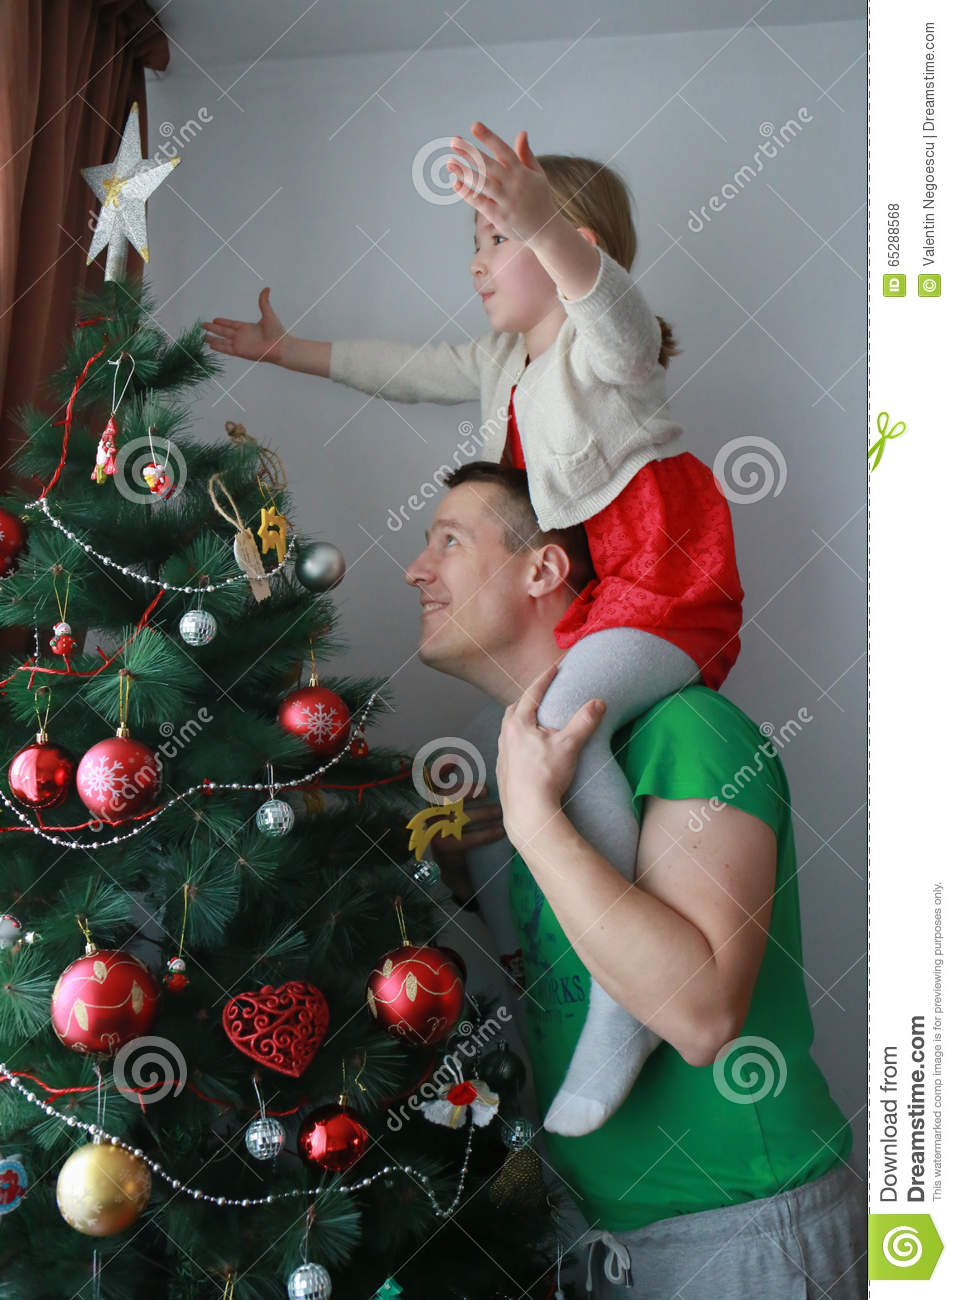 The Girl Put The Christmas Star On Top Of The Tree Stock Photo  Image of adult cute 65288568